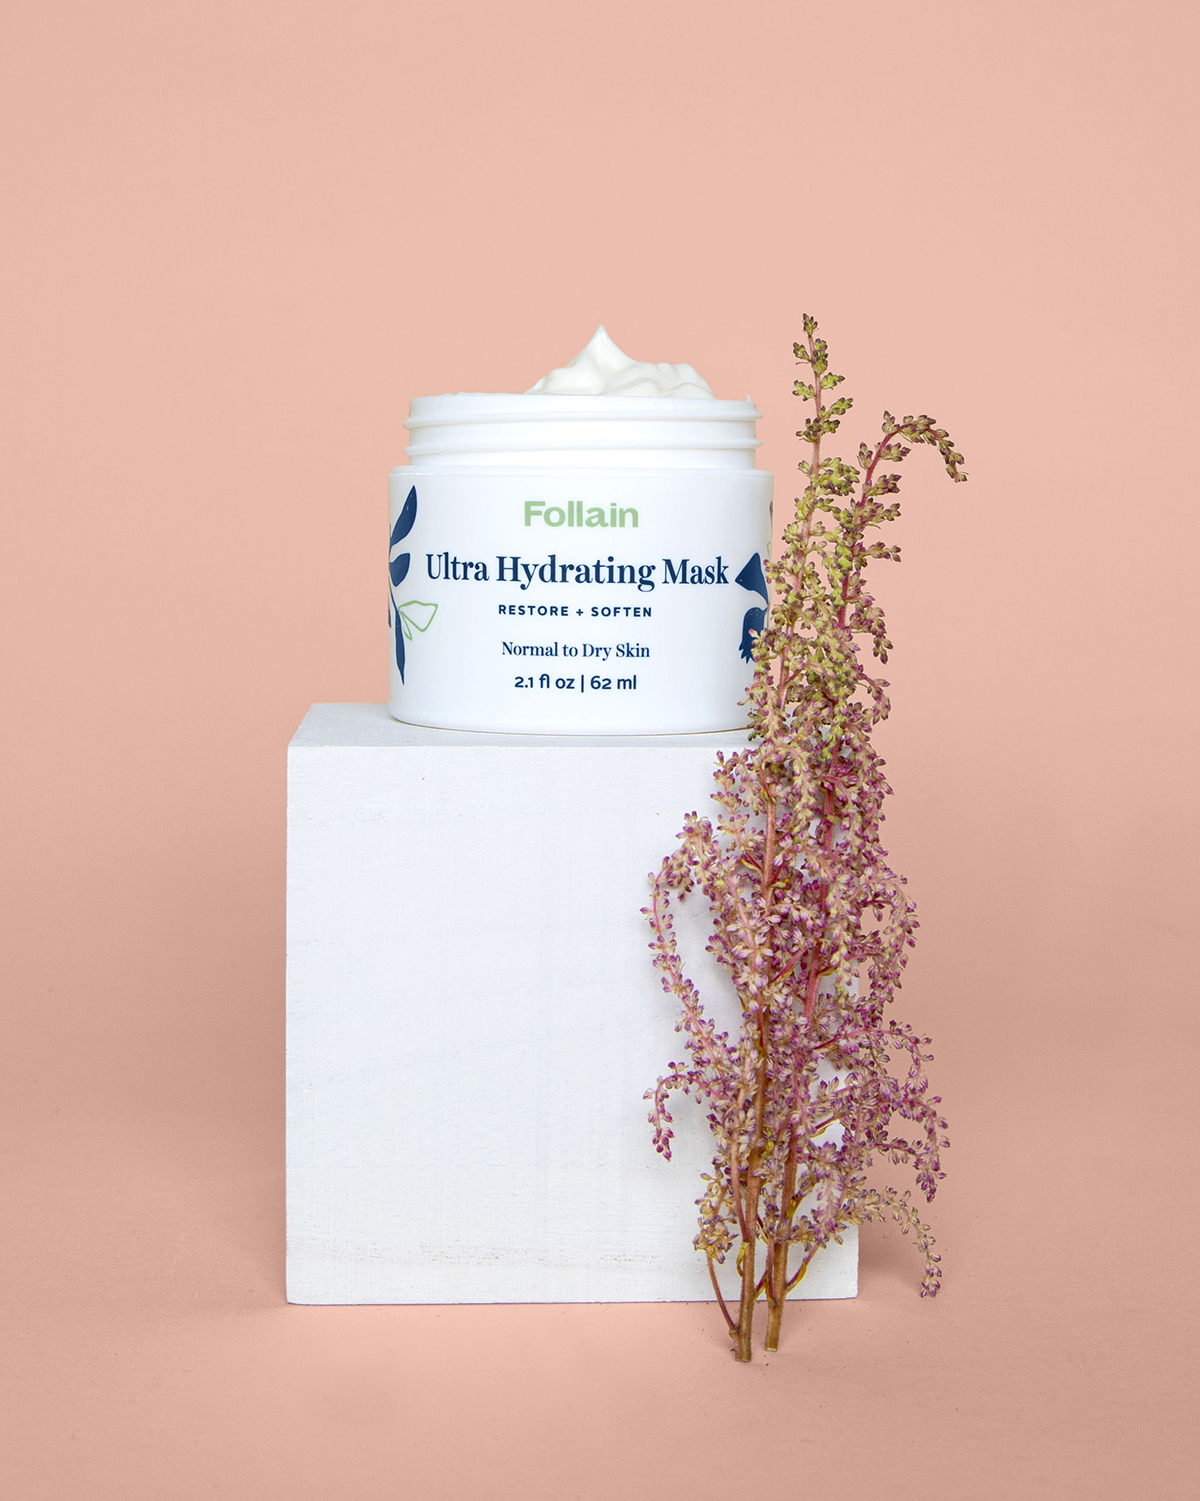 Follain Ultra Hydrating Mask 2.1oz